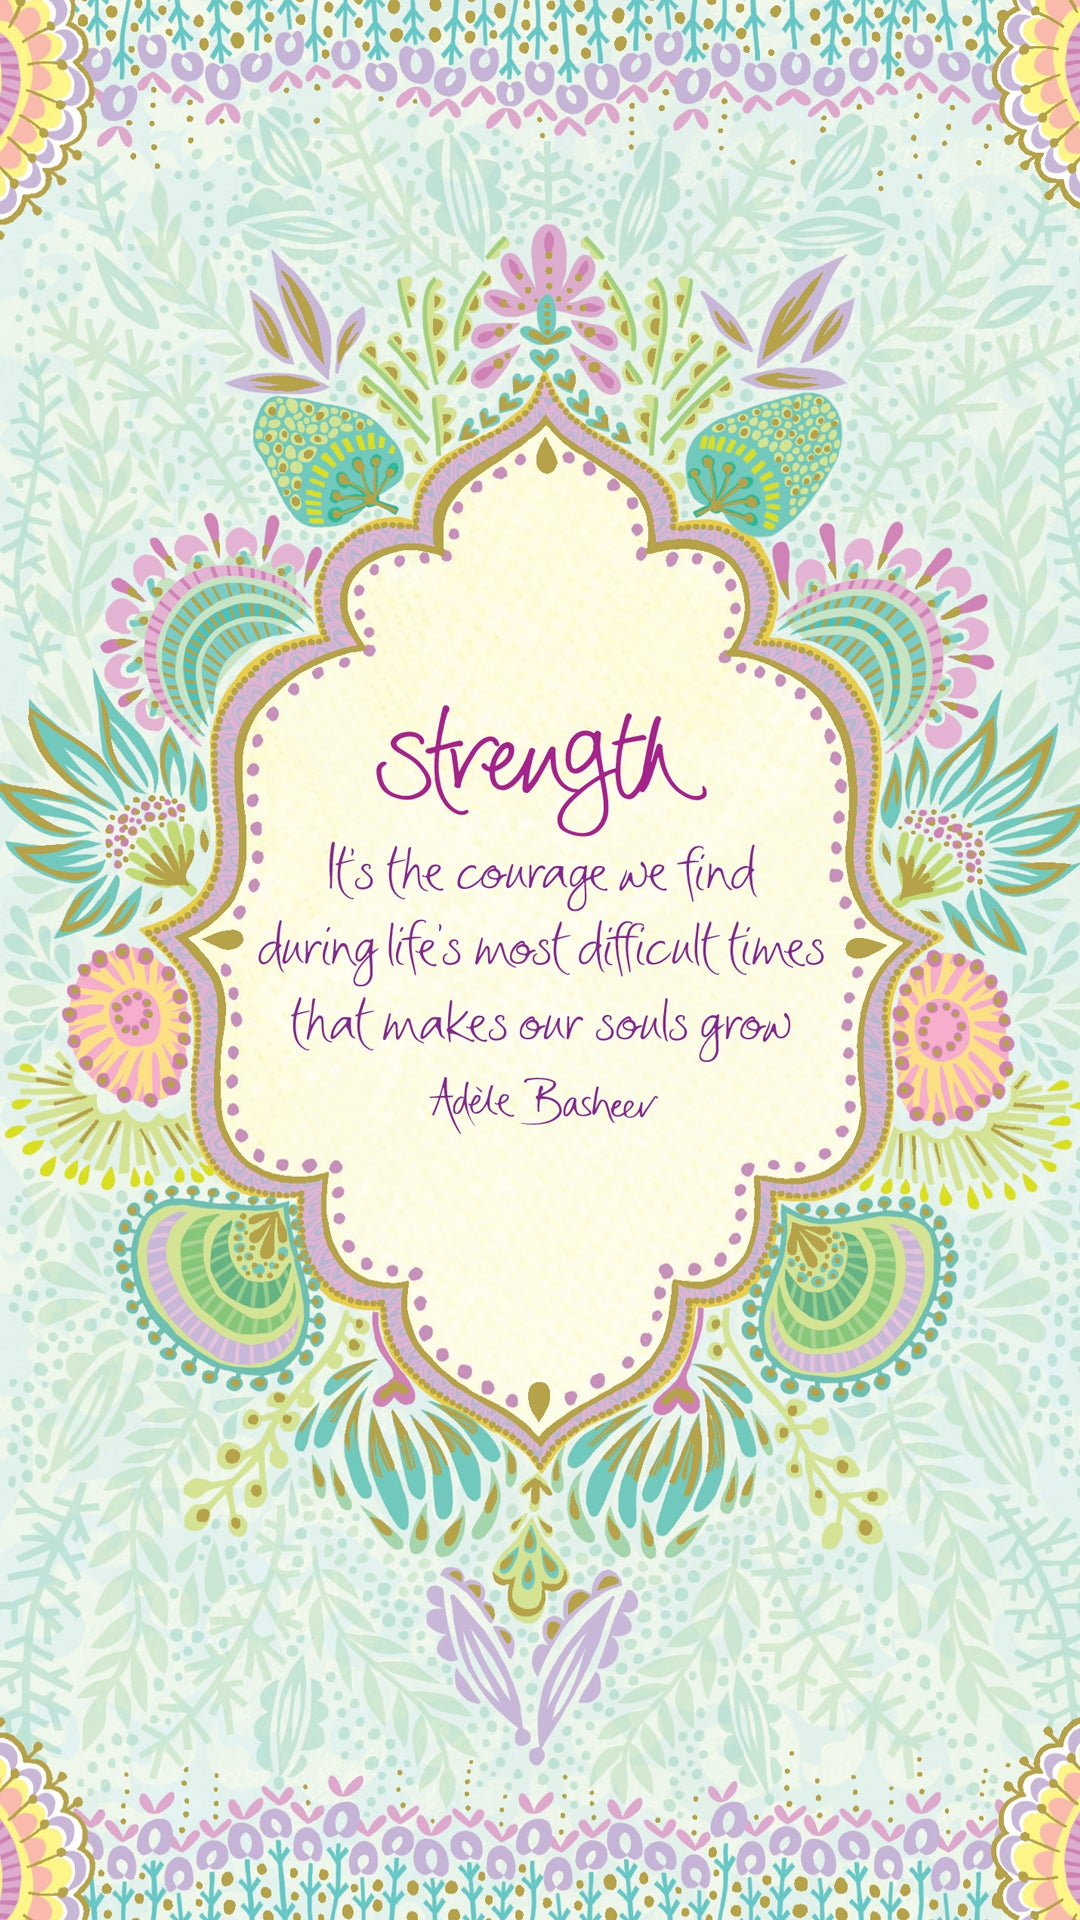 Intrinsic Strength Inspirational Quote by Adele Basheer - Digital Wallpaper